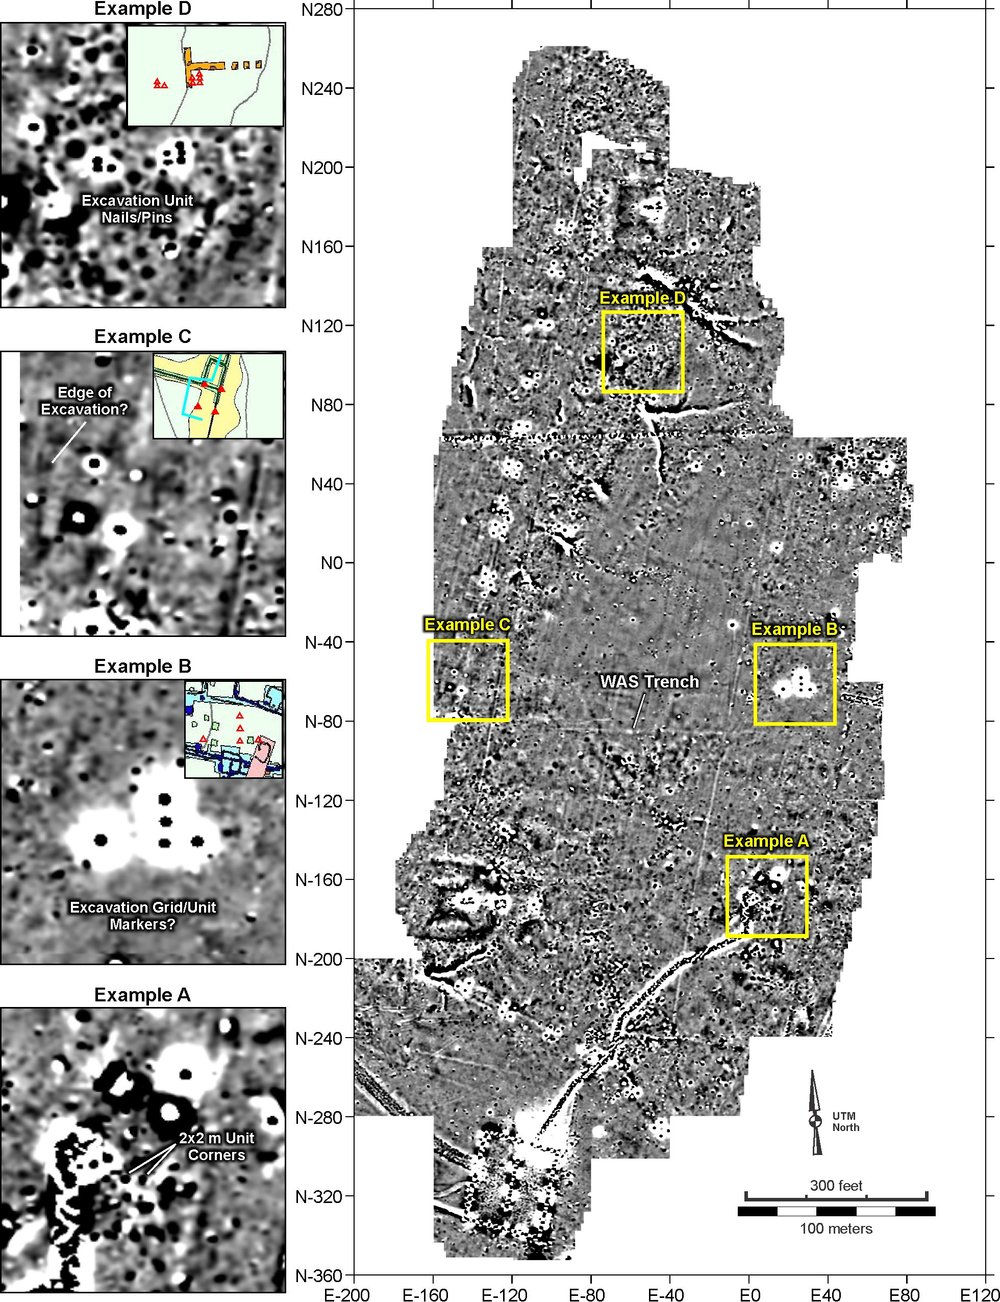 Figure 24. Detail view showing several areas with anomalies perhaps related to previous excavations.